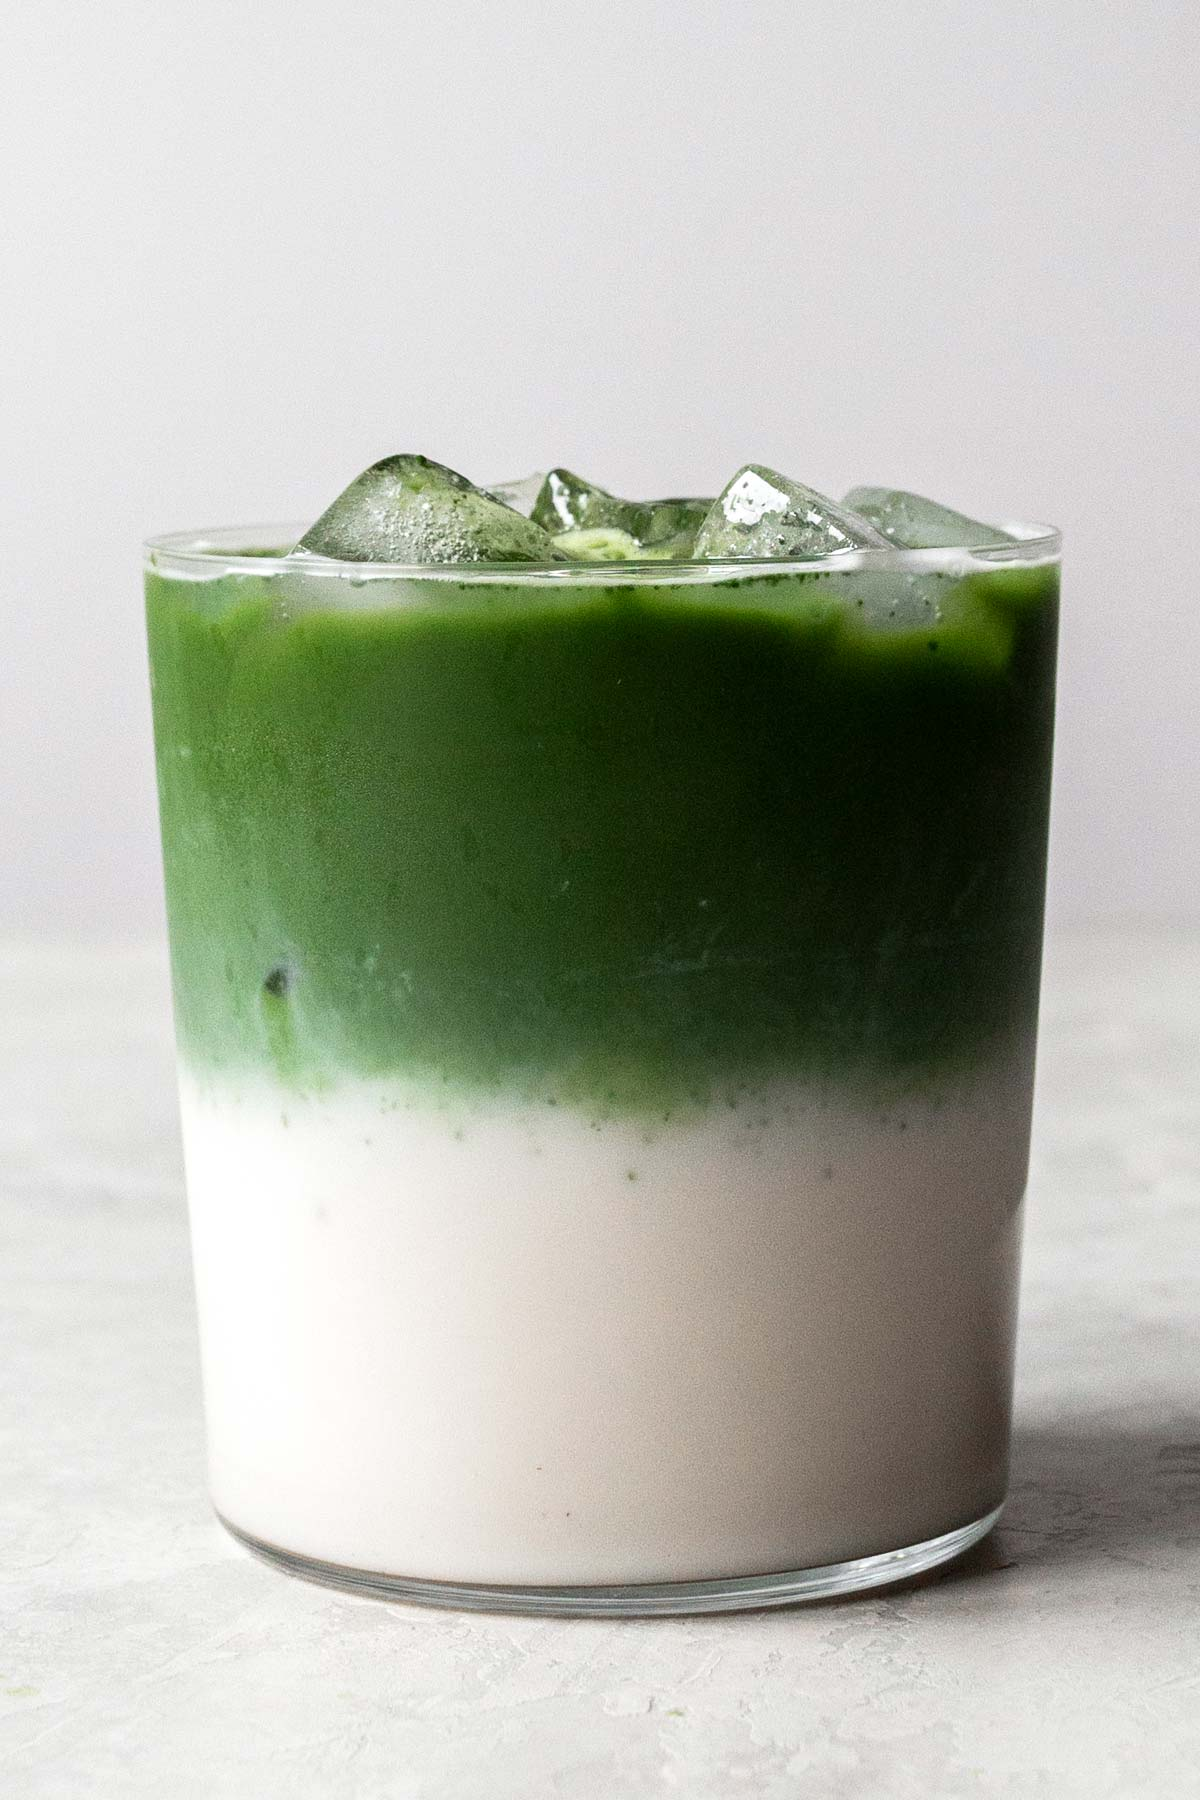 Layered iced matcha latte in a cup.